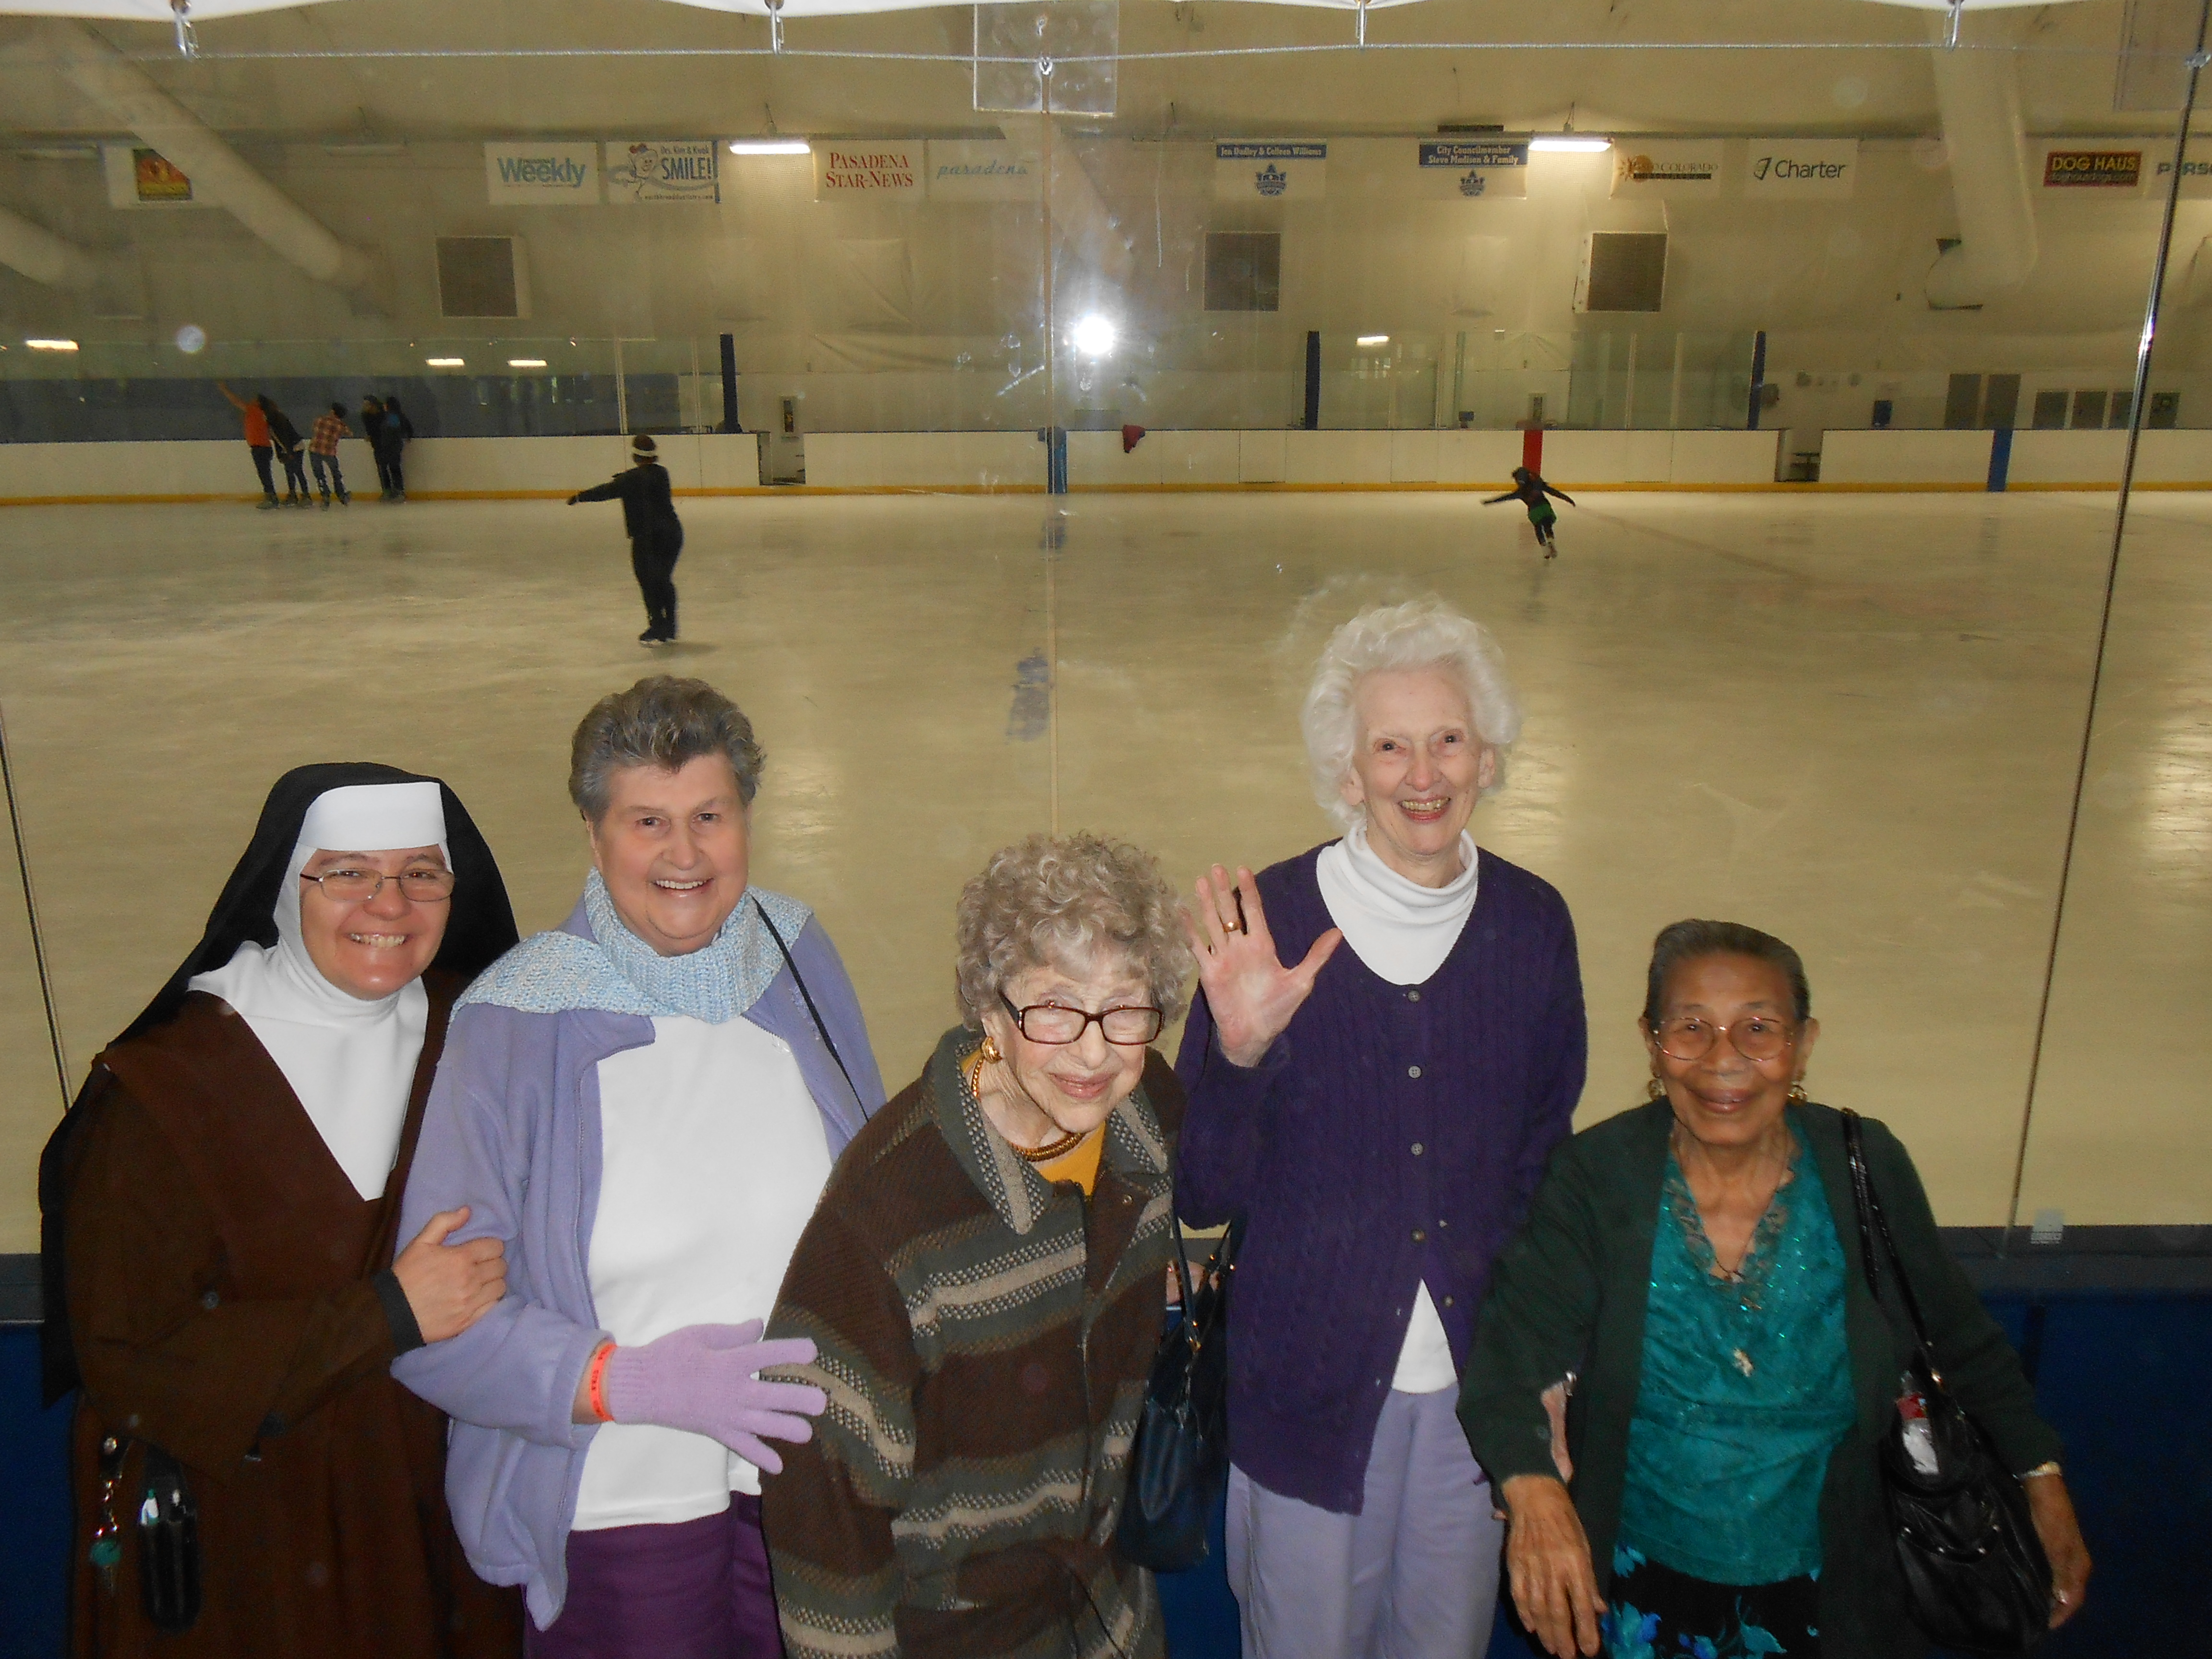 Residents Ice rink outing